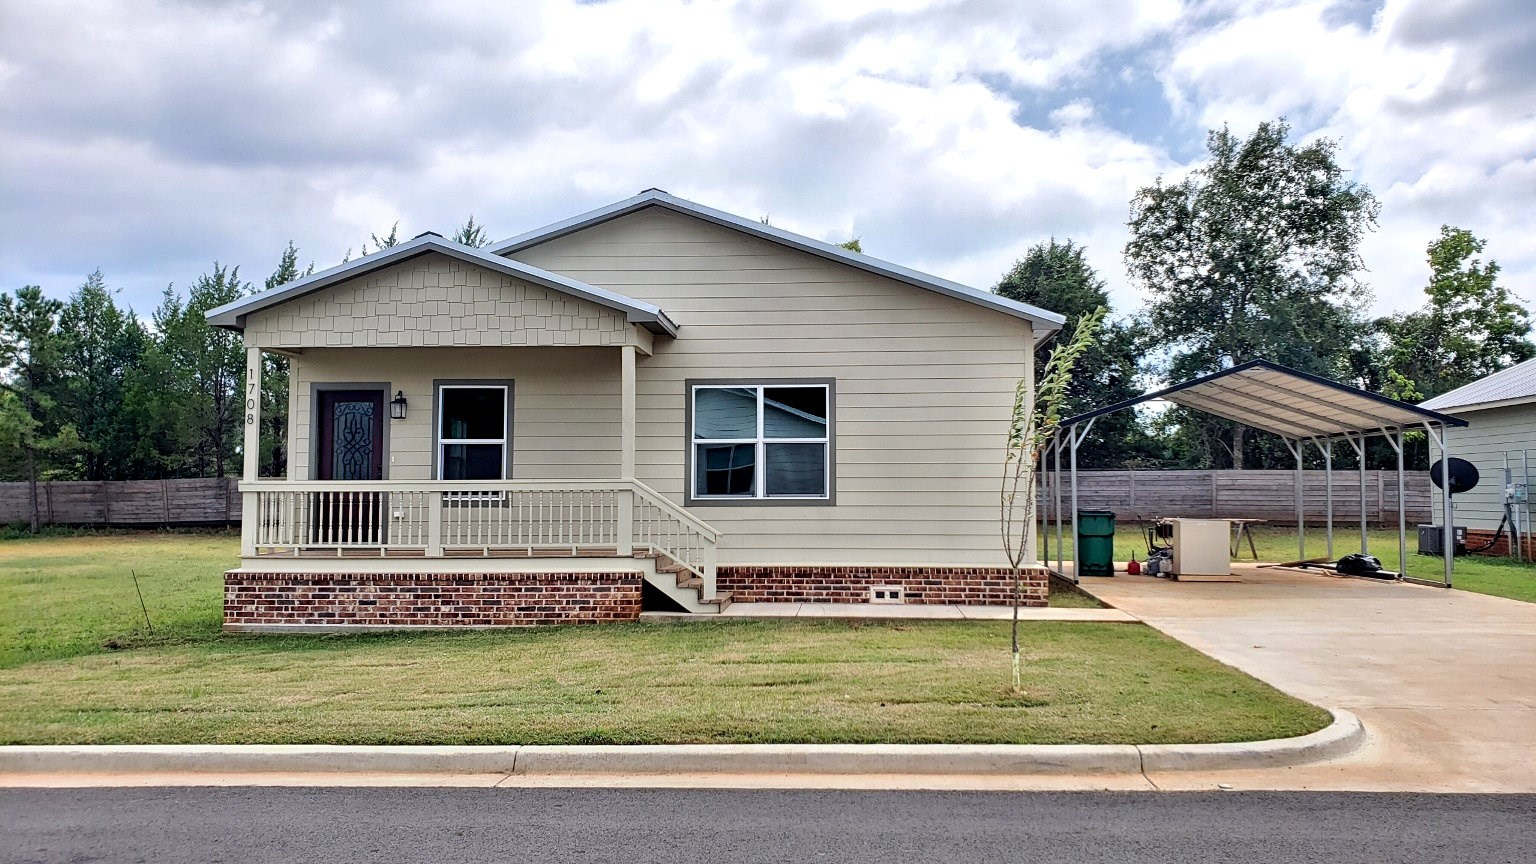 CHARMING NEW HOME FOR SALE ON IN PALESTINE TX